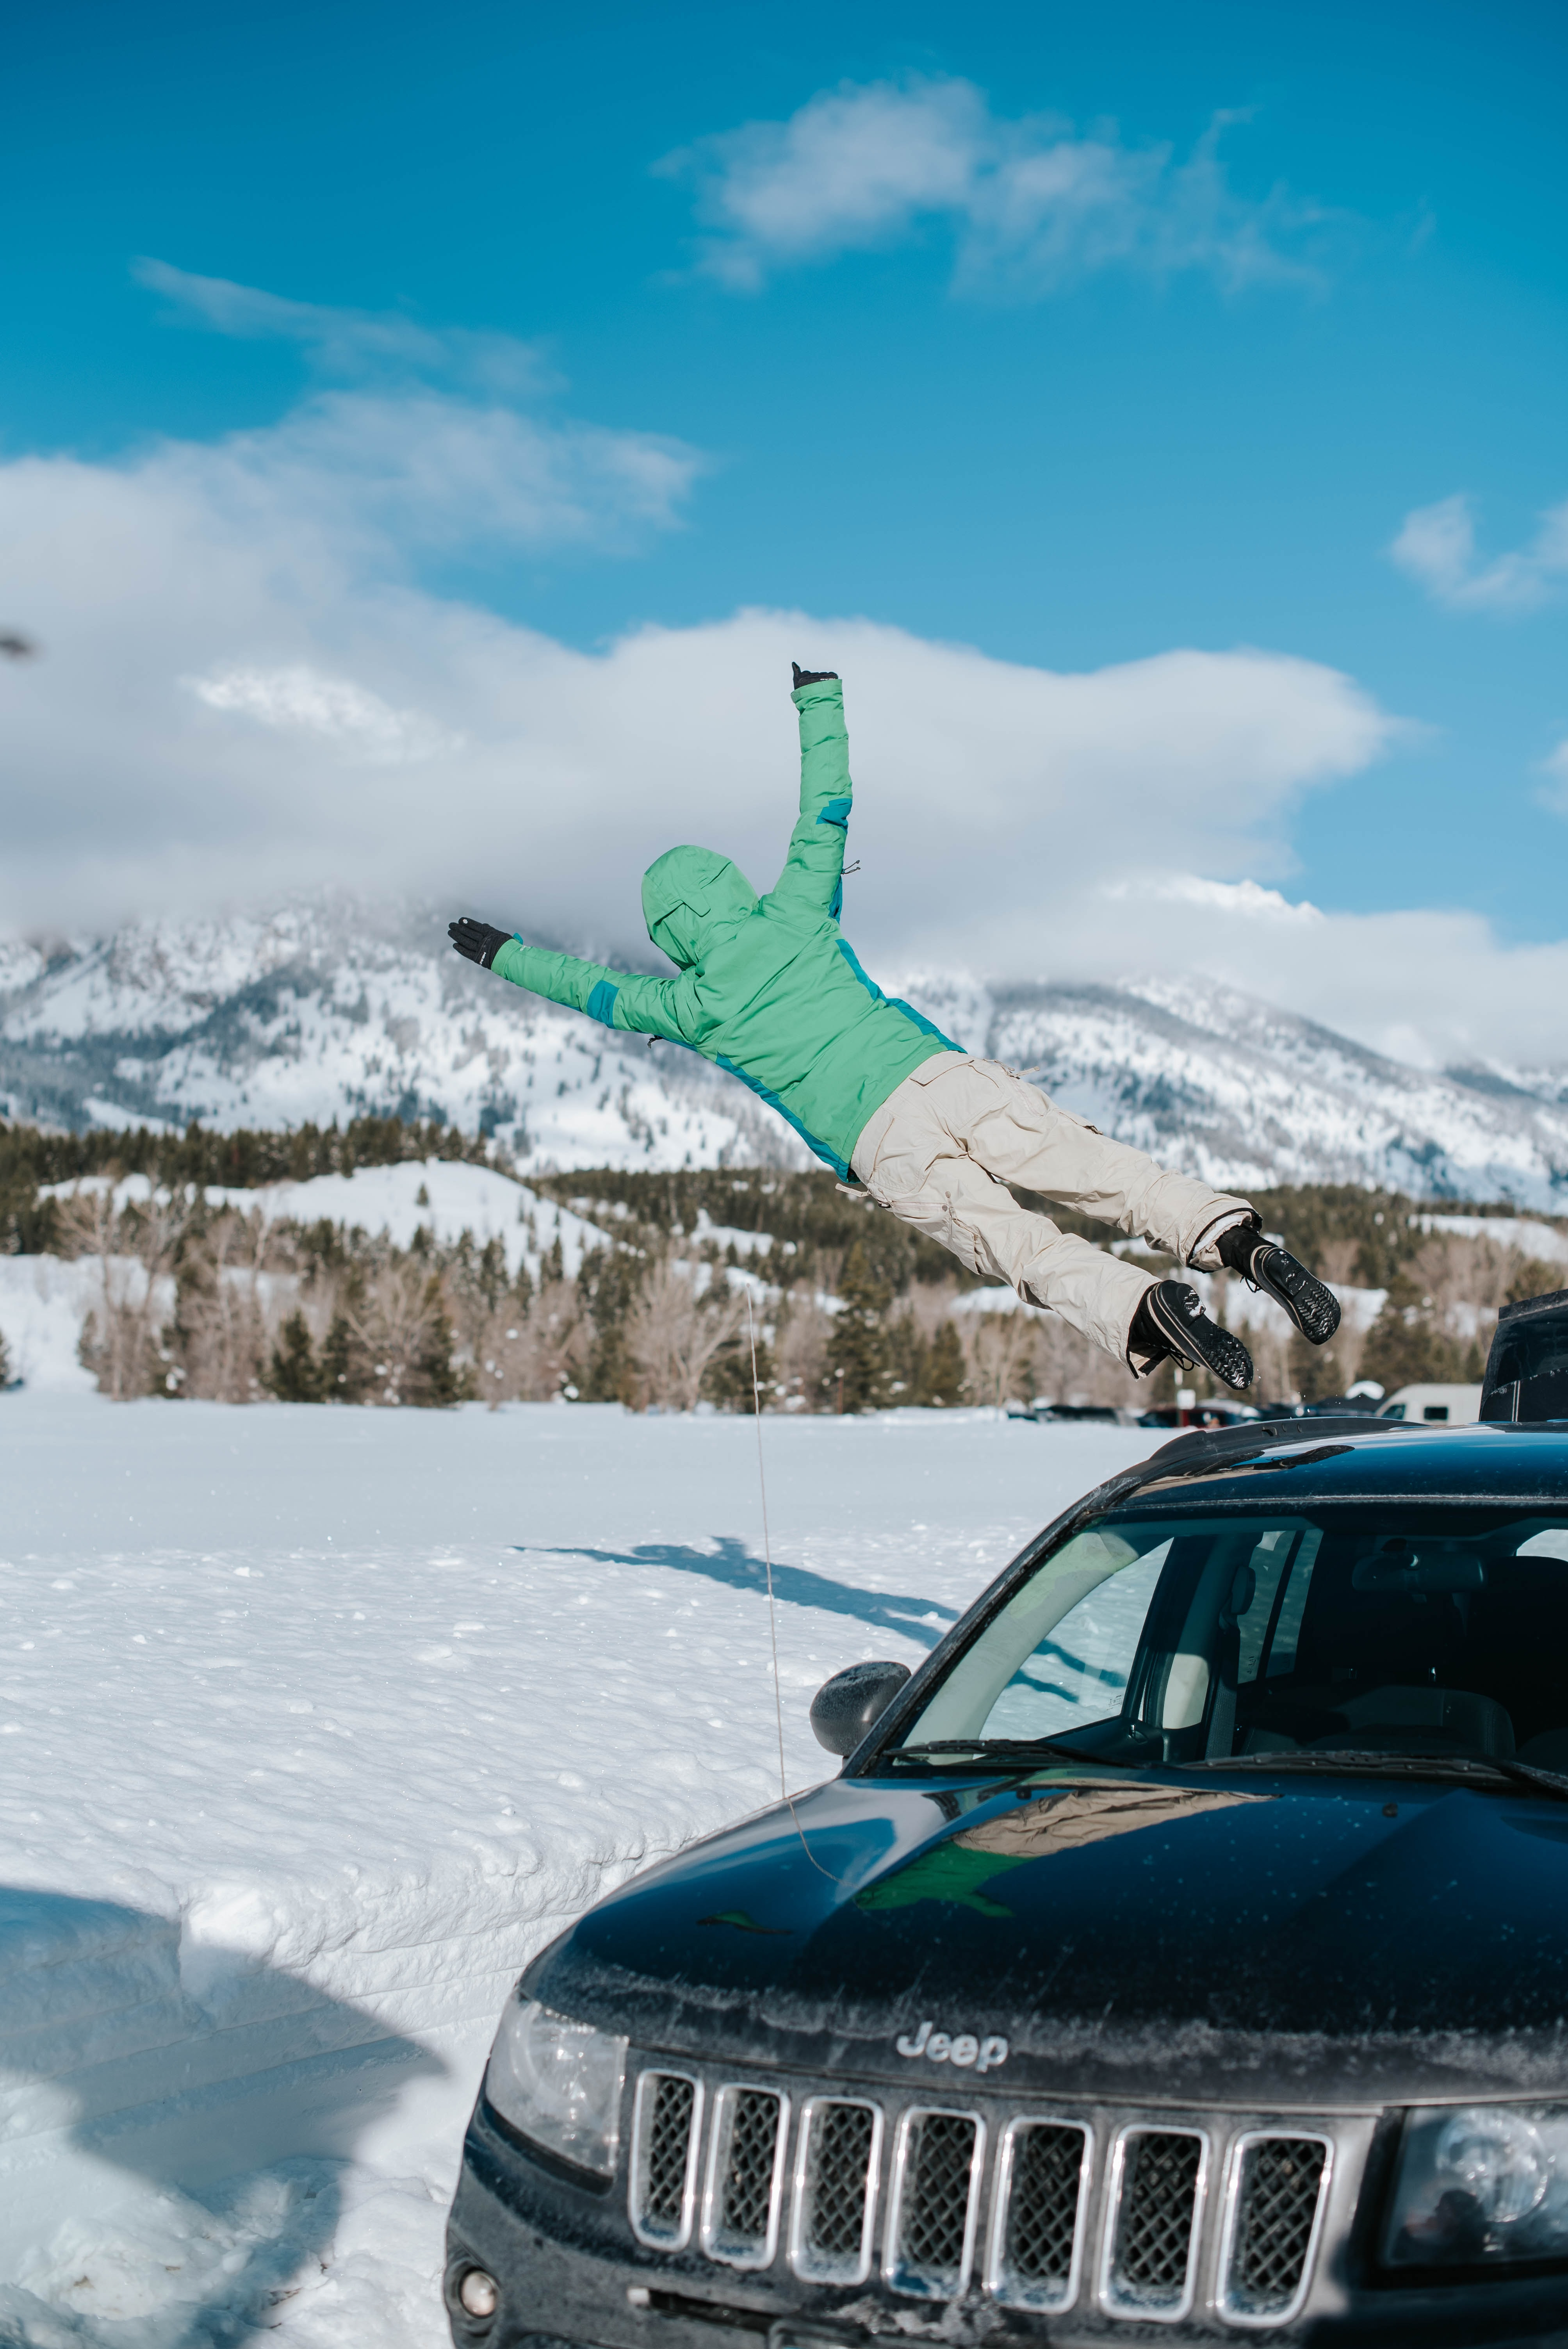 137266 download wallpaper Miscellanea, Miscellaneous, Bounce, Jump, Car, Machine, Snow, Mountains screensavers and pictures for free